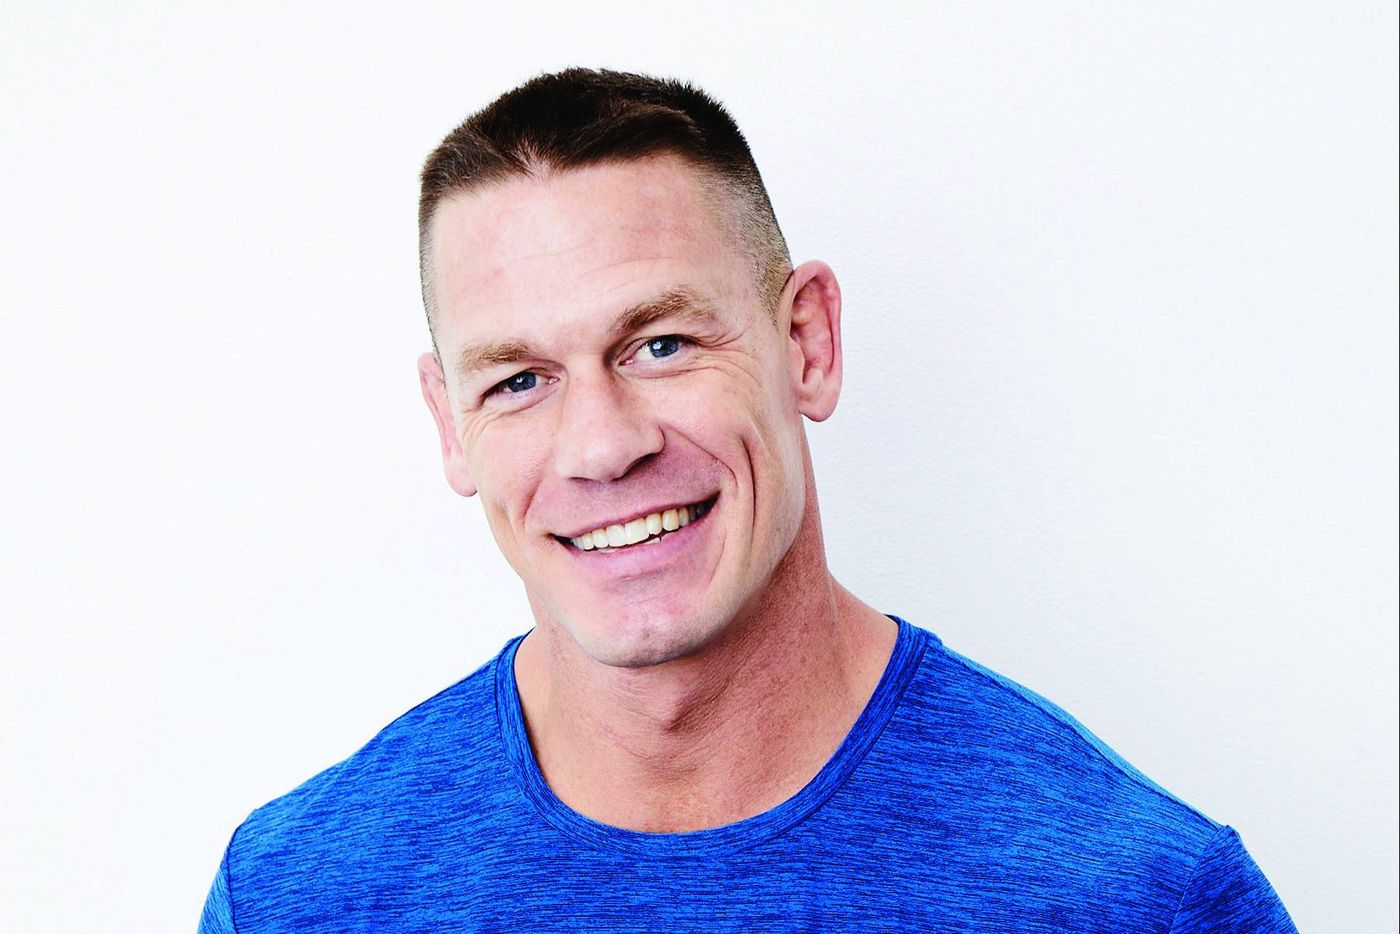 John Cena's newest gig? Children's book author